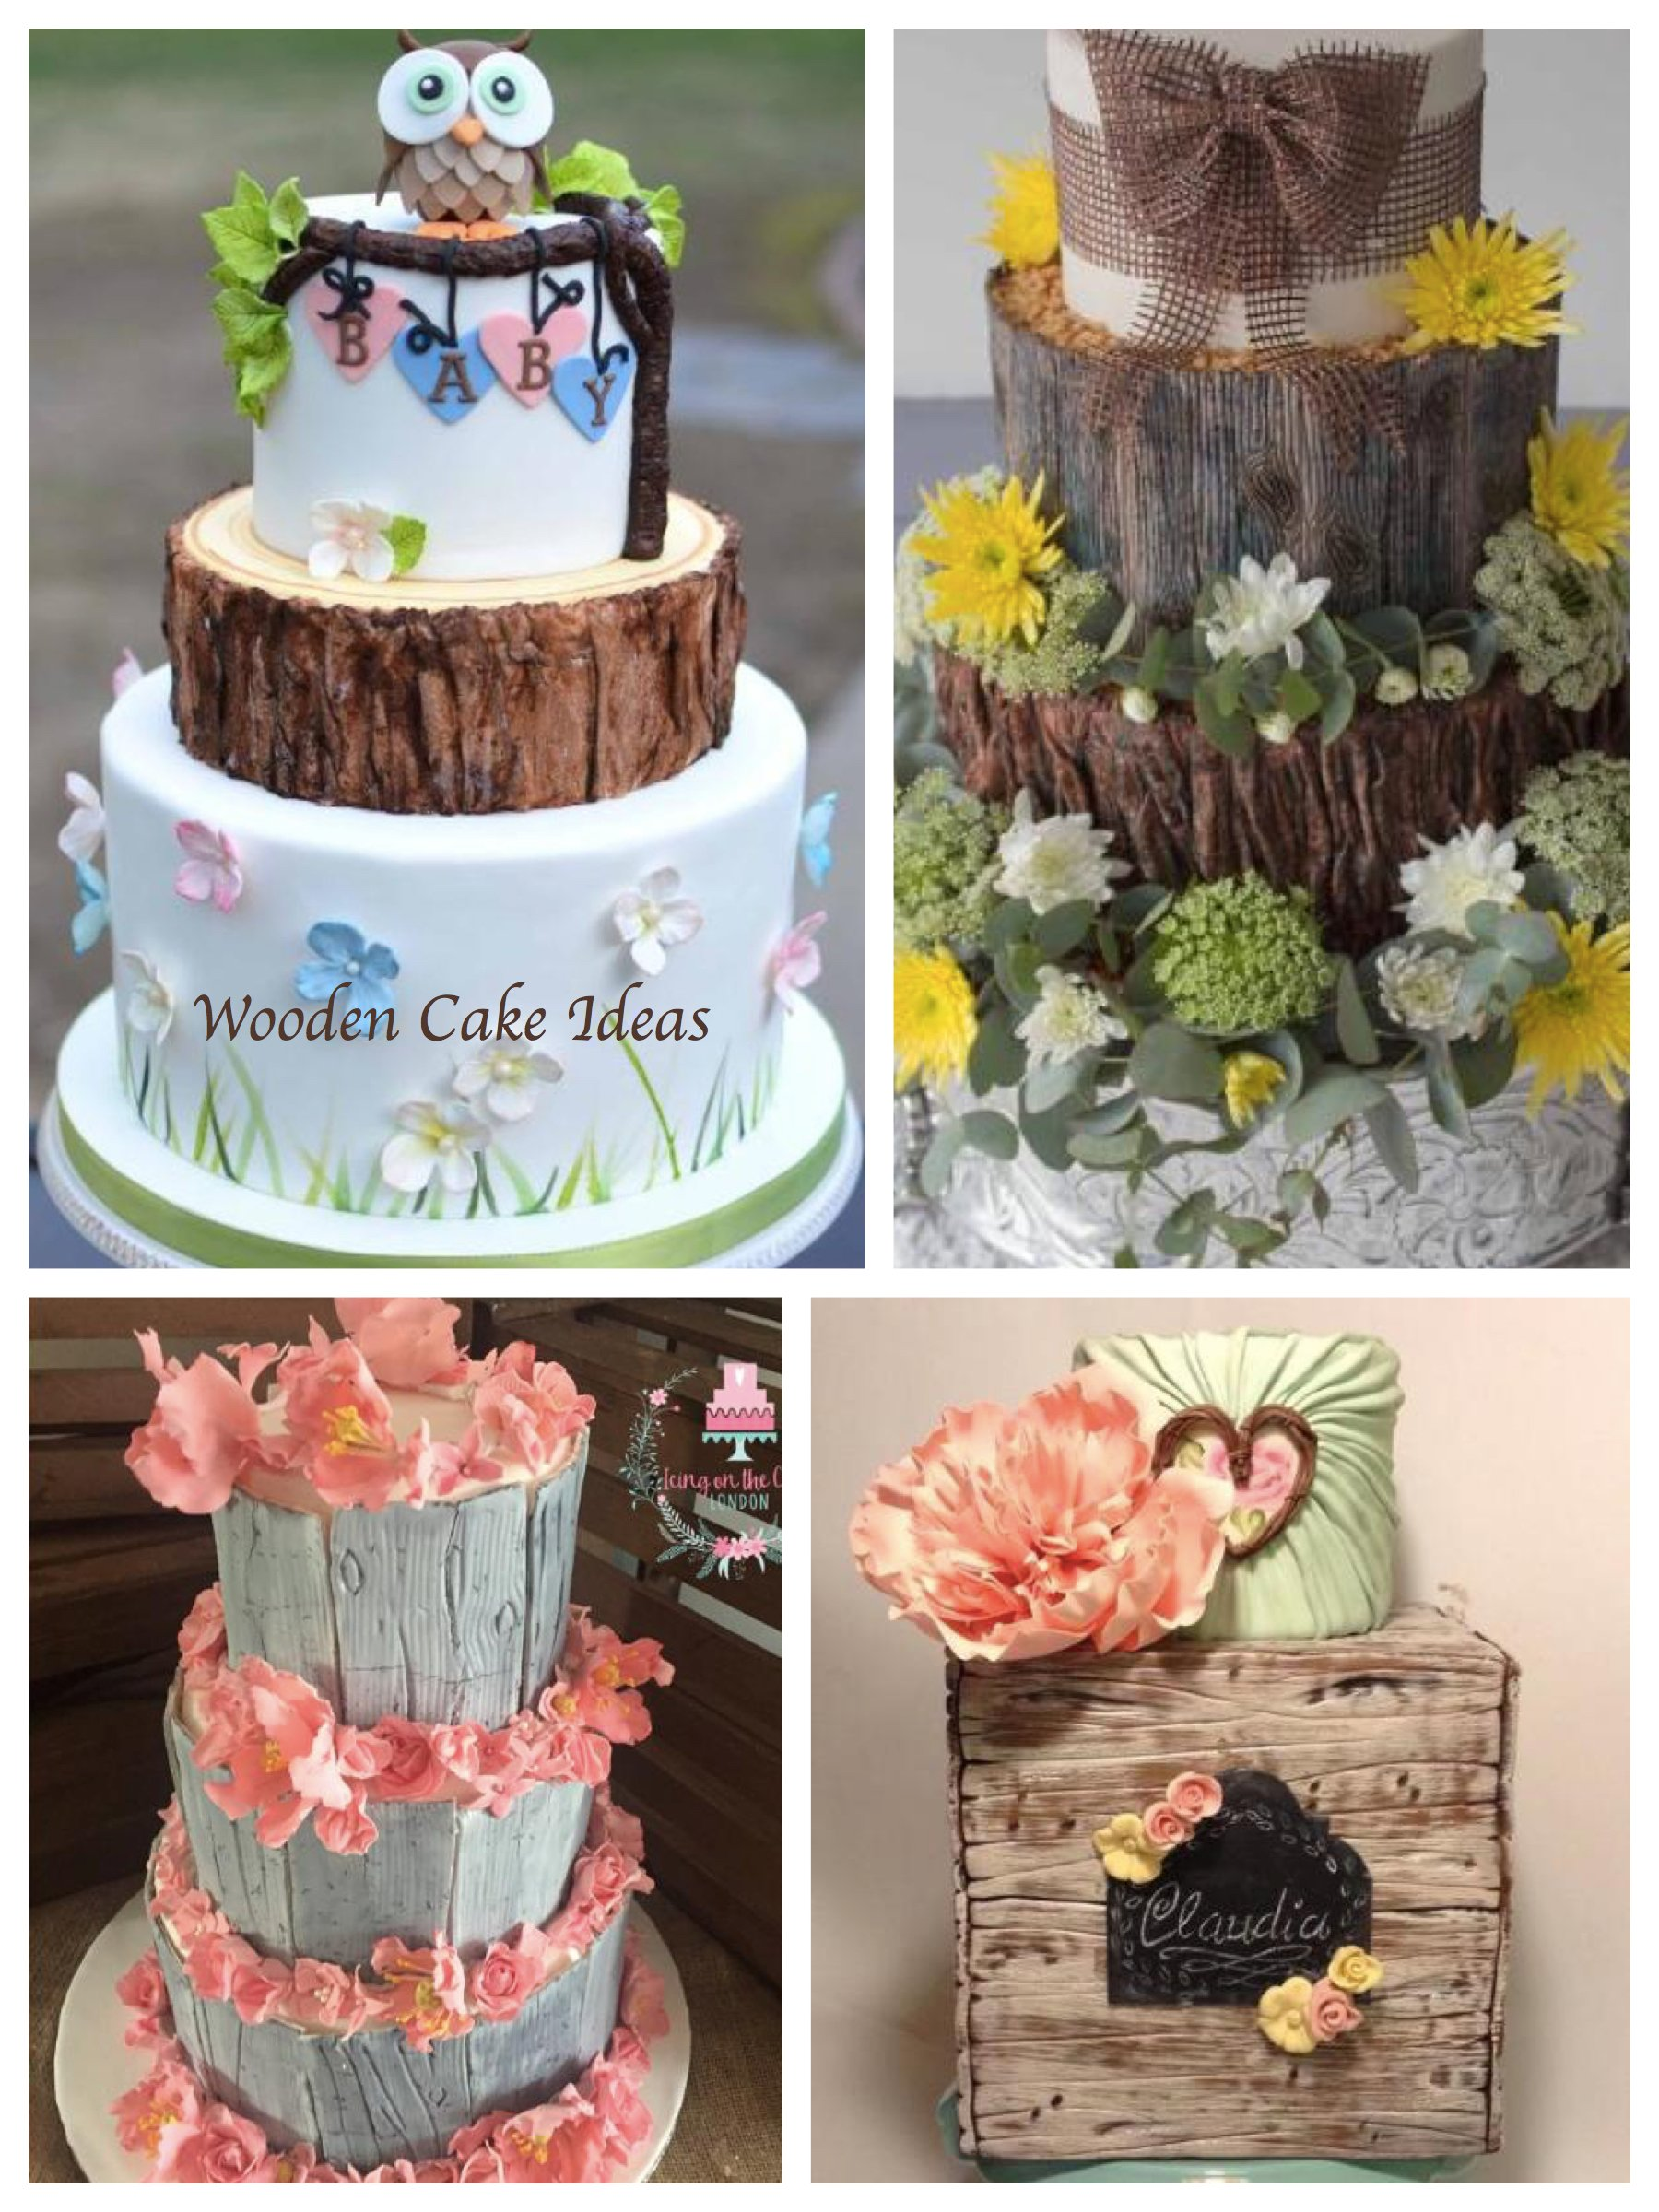 Nature-Inspired and Wooden Cake Ideas